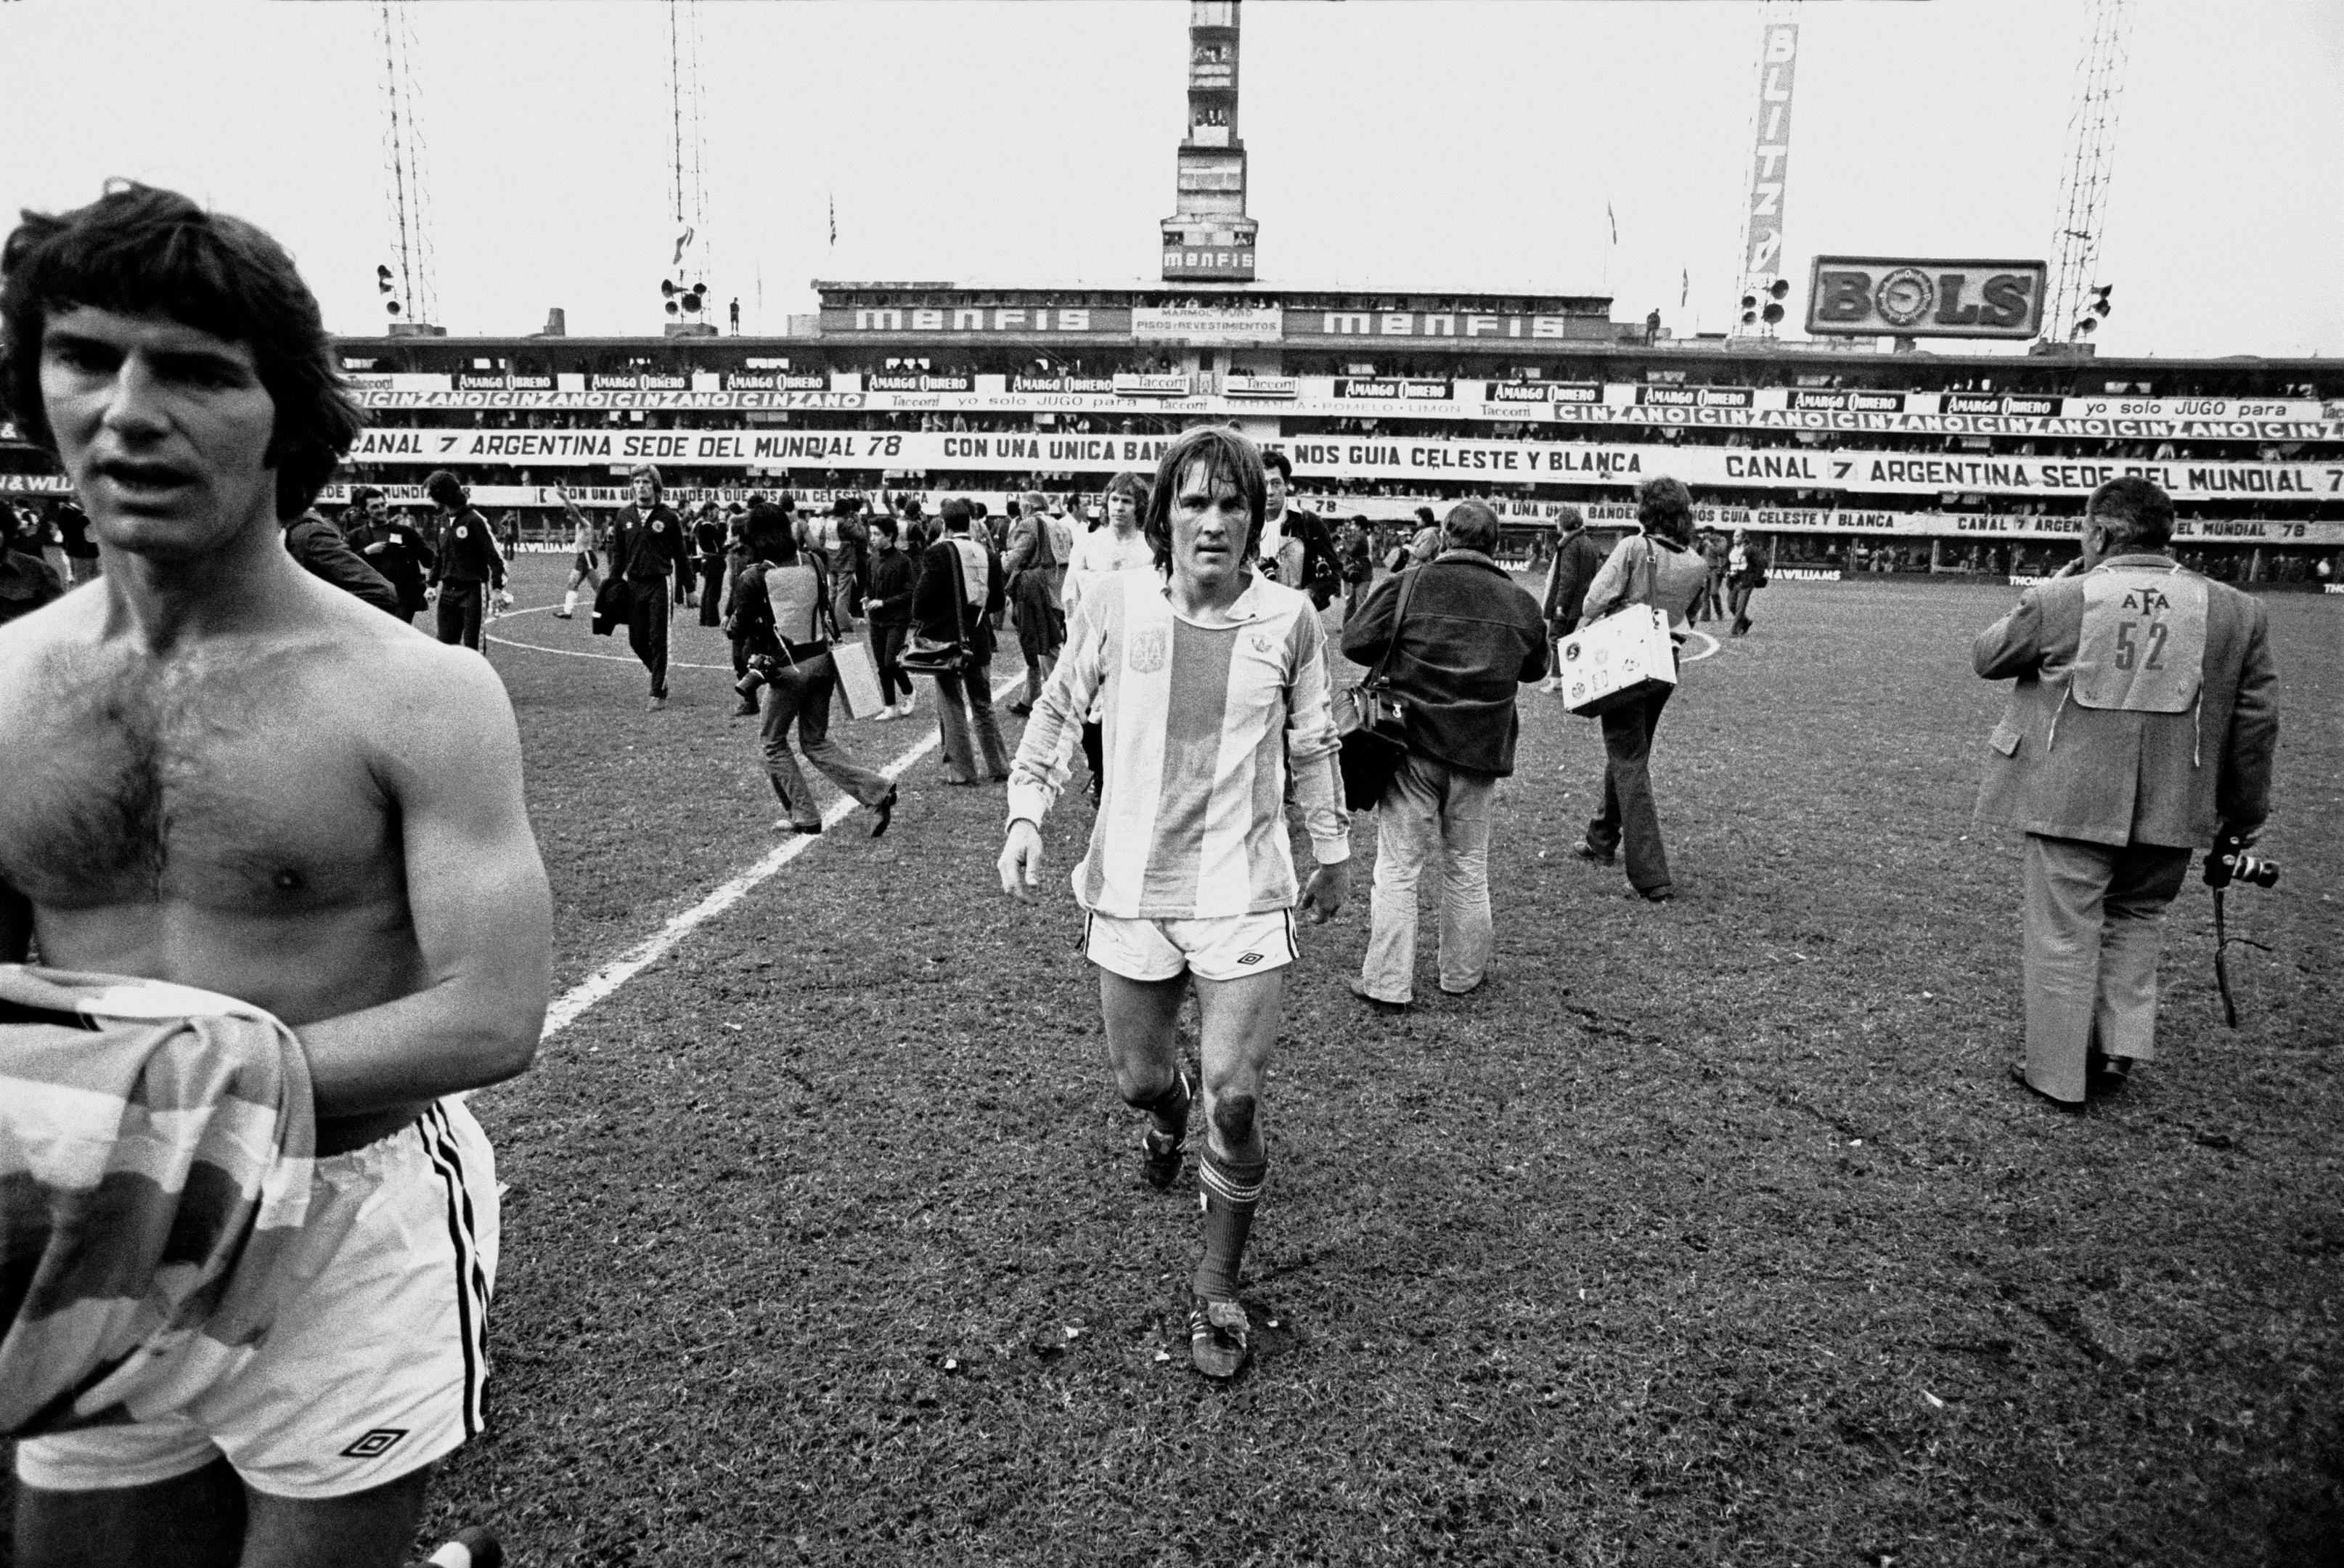 Kenny Dalglish, complete with Argentina top, comes off the pitch after a torrid friendly in Buenos Aires in 1977. Team-mate Martin Buchan of Manchester United is on the left (EMPICS Sport)